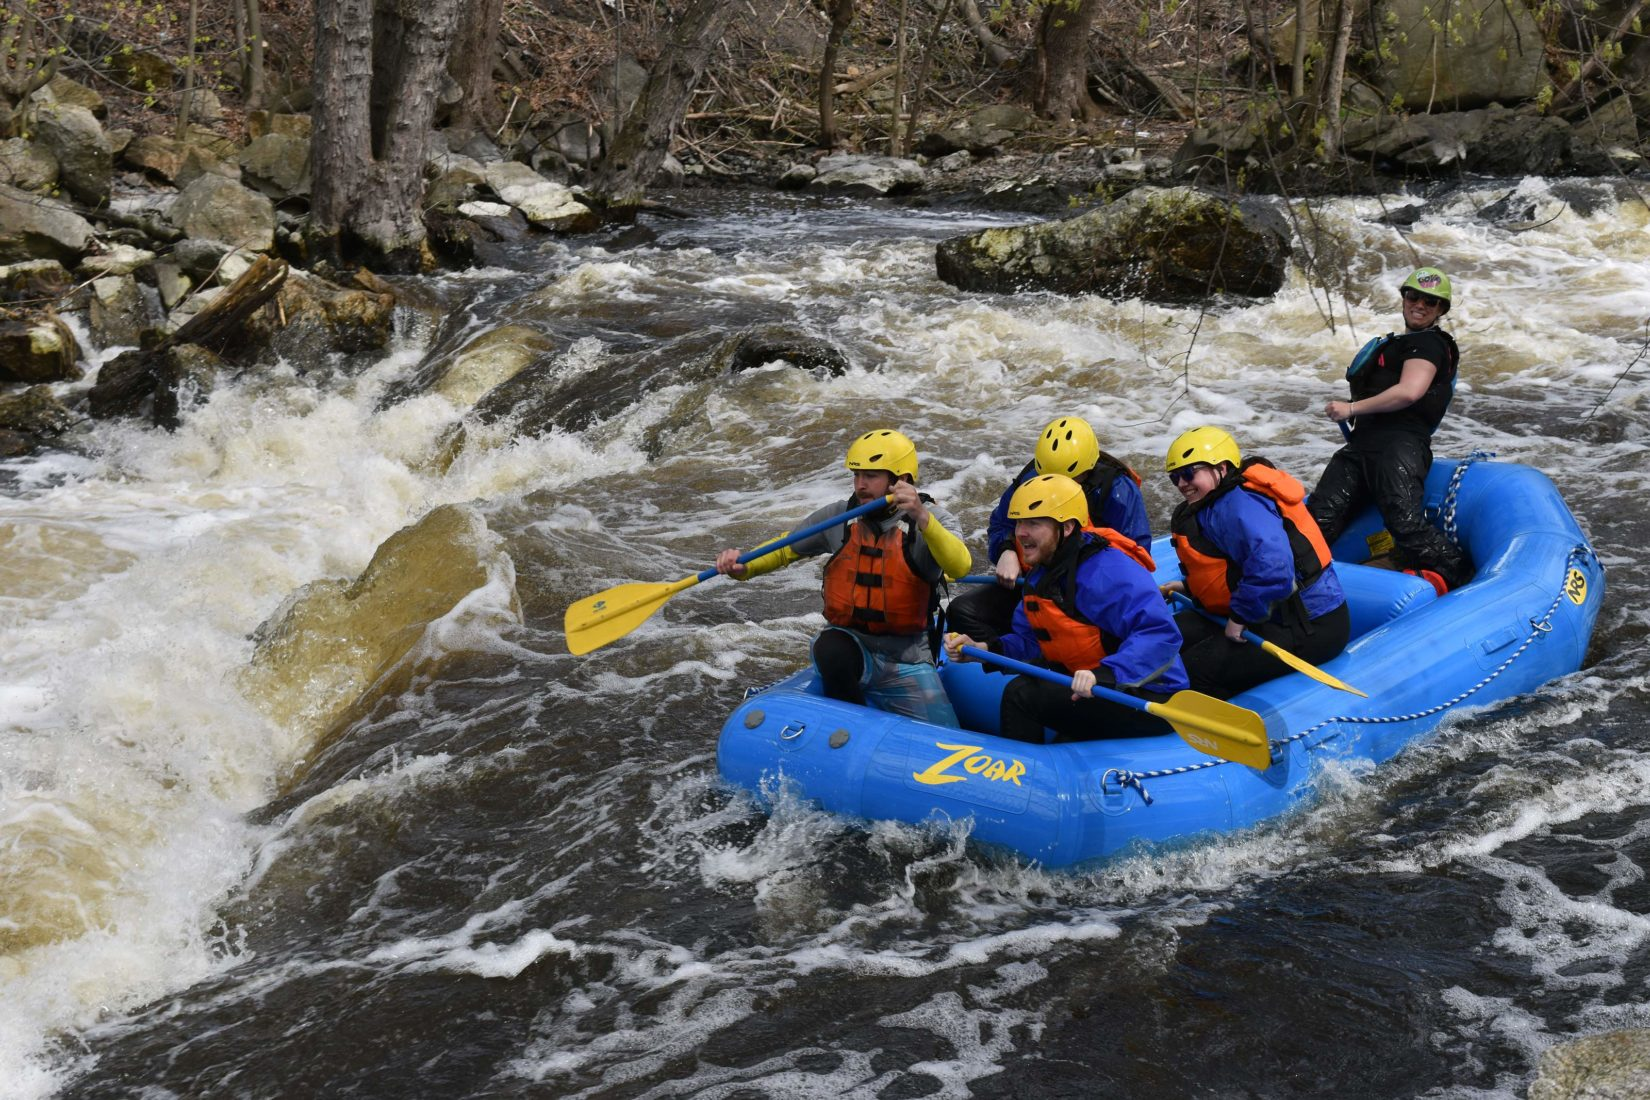 rafting, Concord River, whitewater, Zoar Outdoor, Lowell, urban